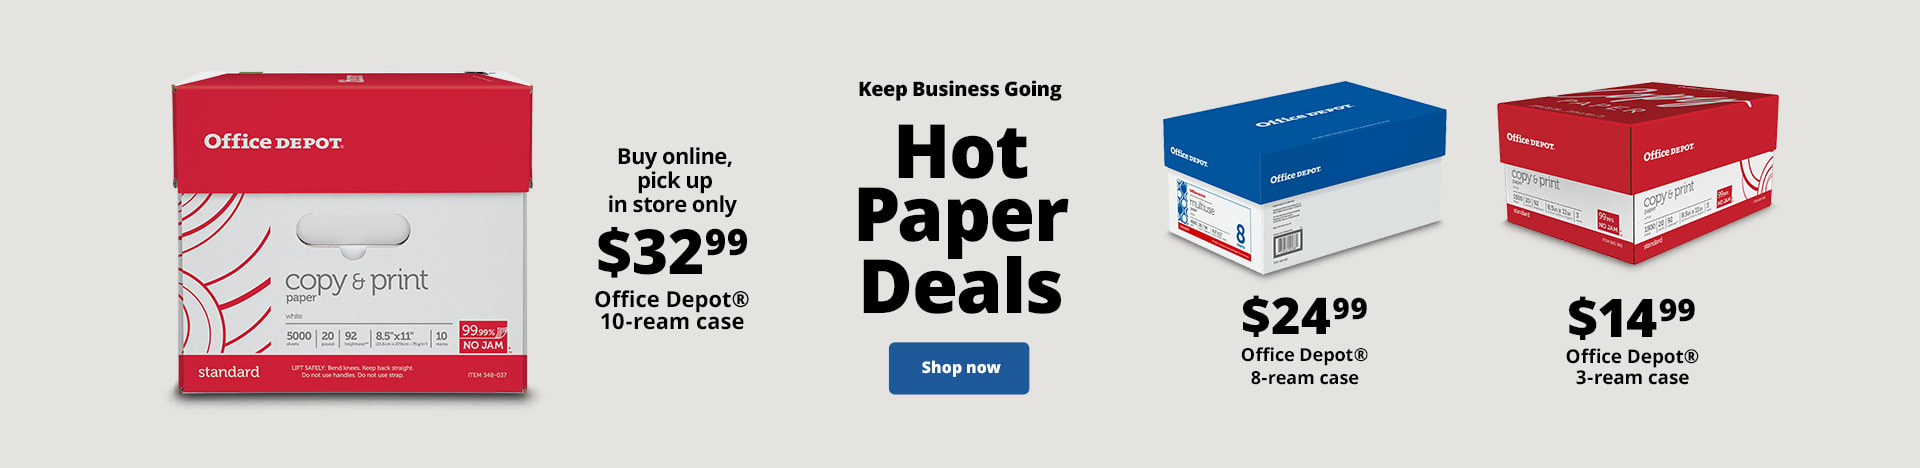 Keep Business Going. Hot Paper Deals